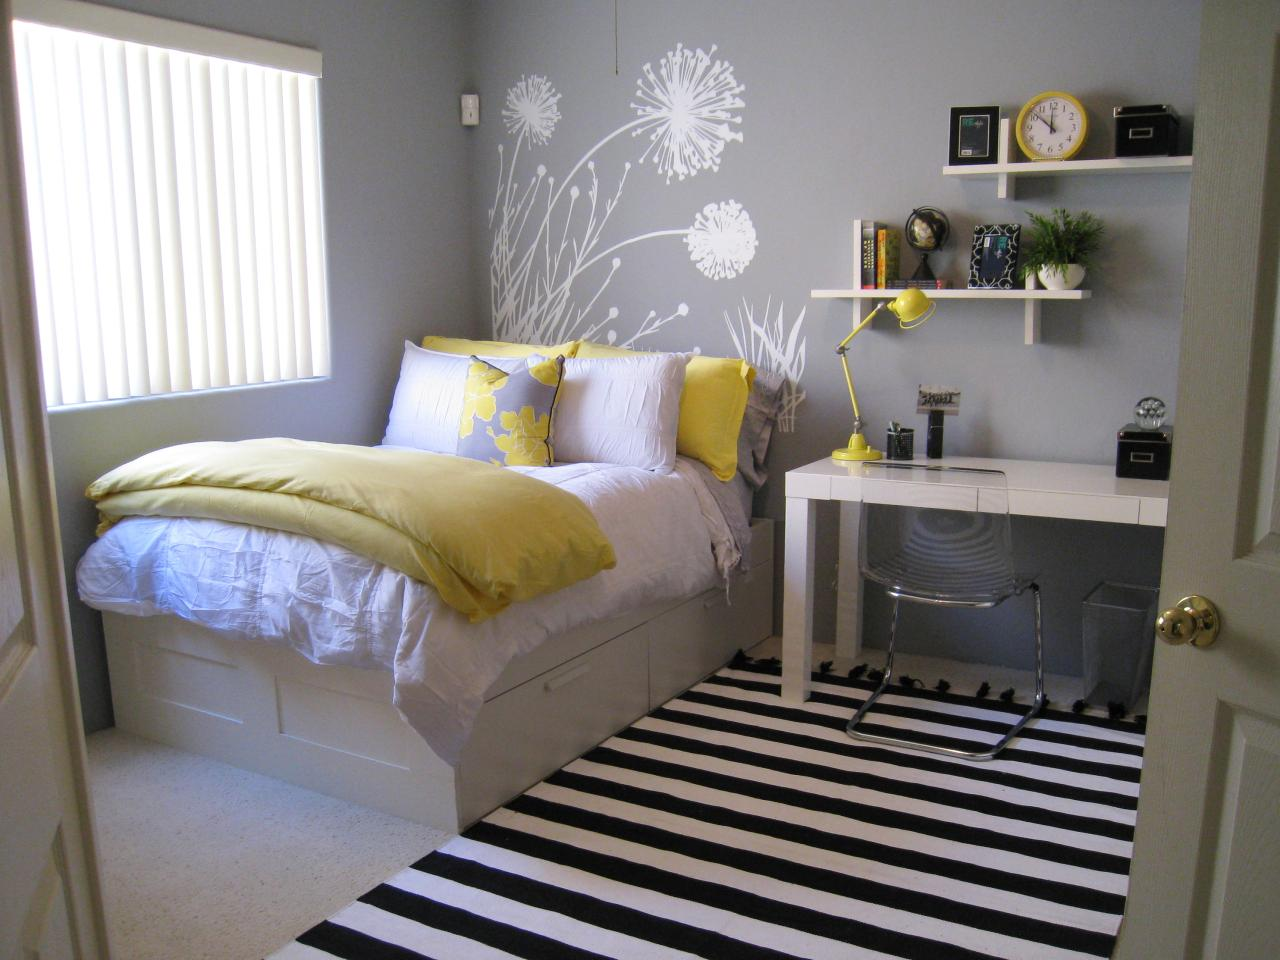 Decal Dreams & DIY Headboards: 53 Original Ideas for Easy Style | DIY Network ... pillowsntoast.com